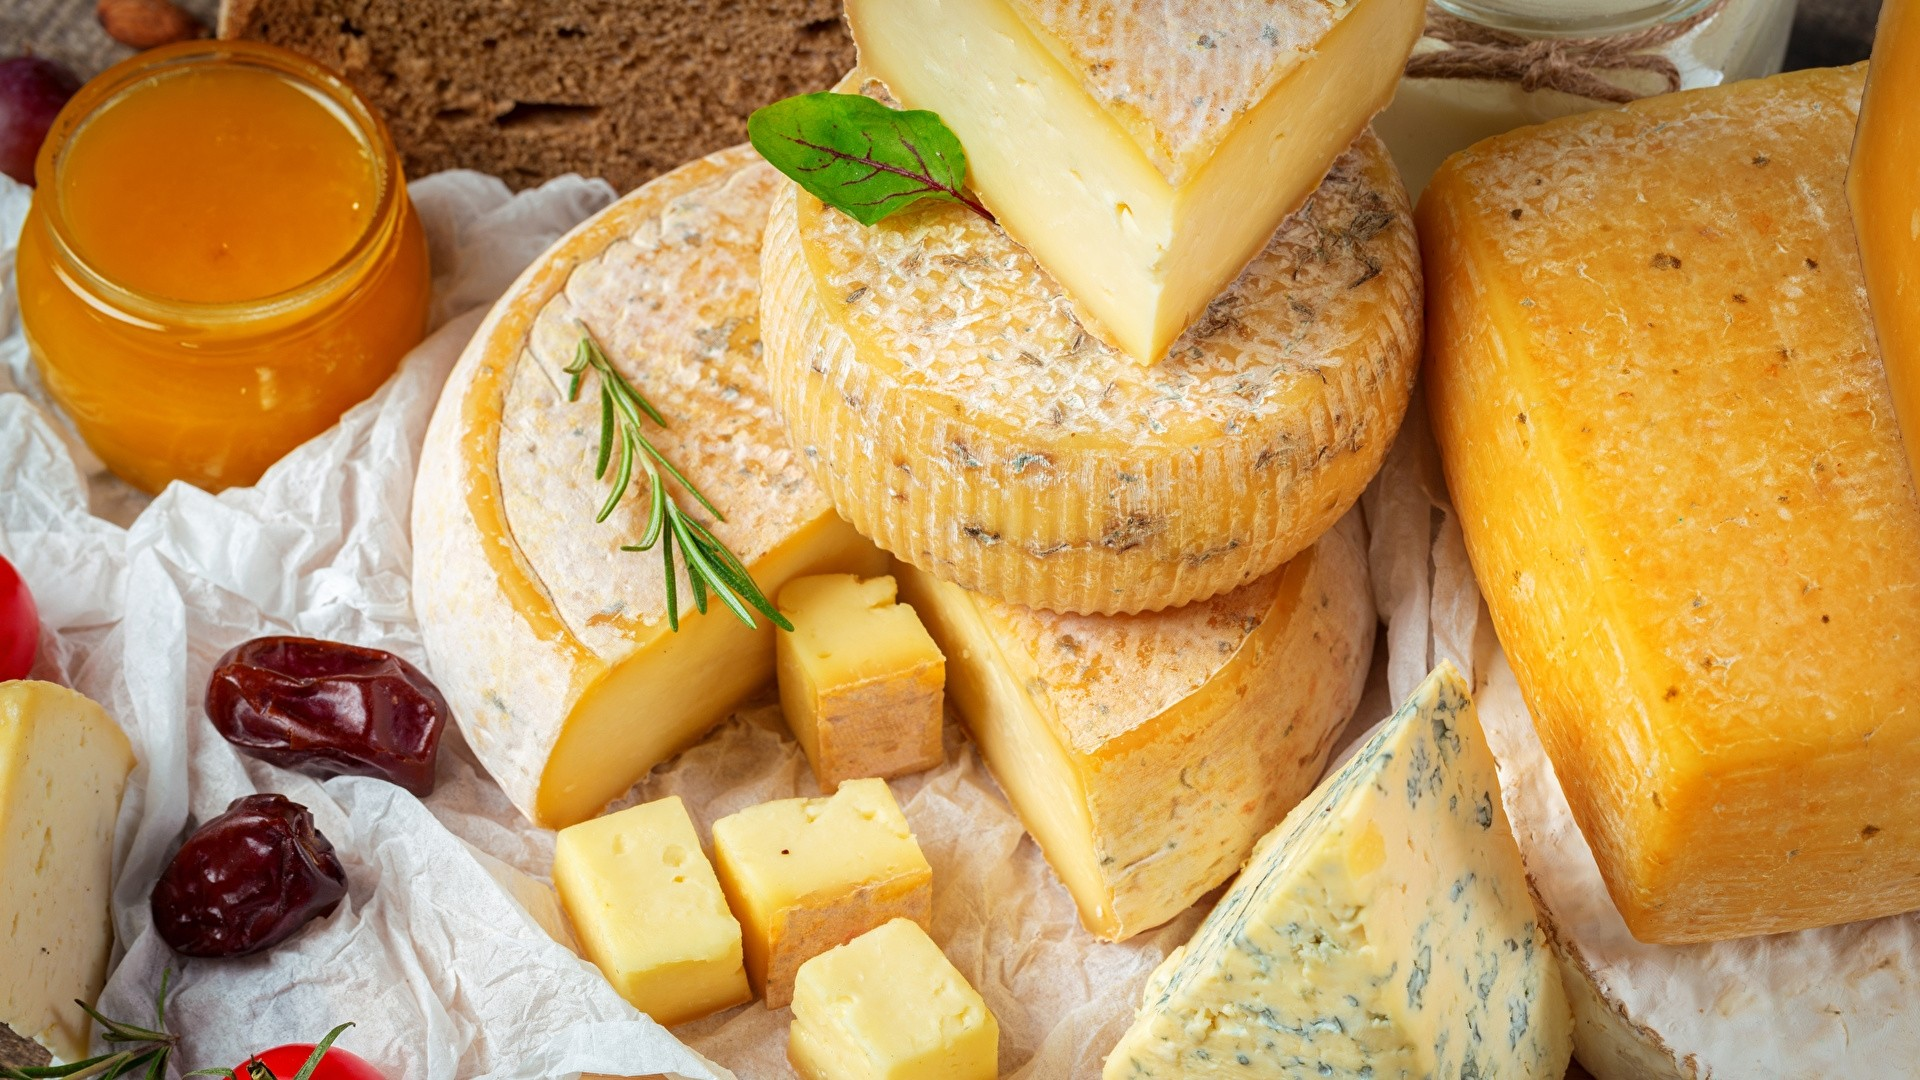 Cheese Wallpaper Free Download